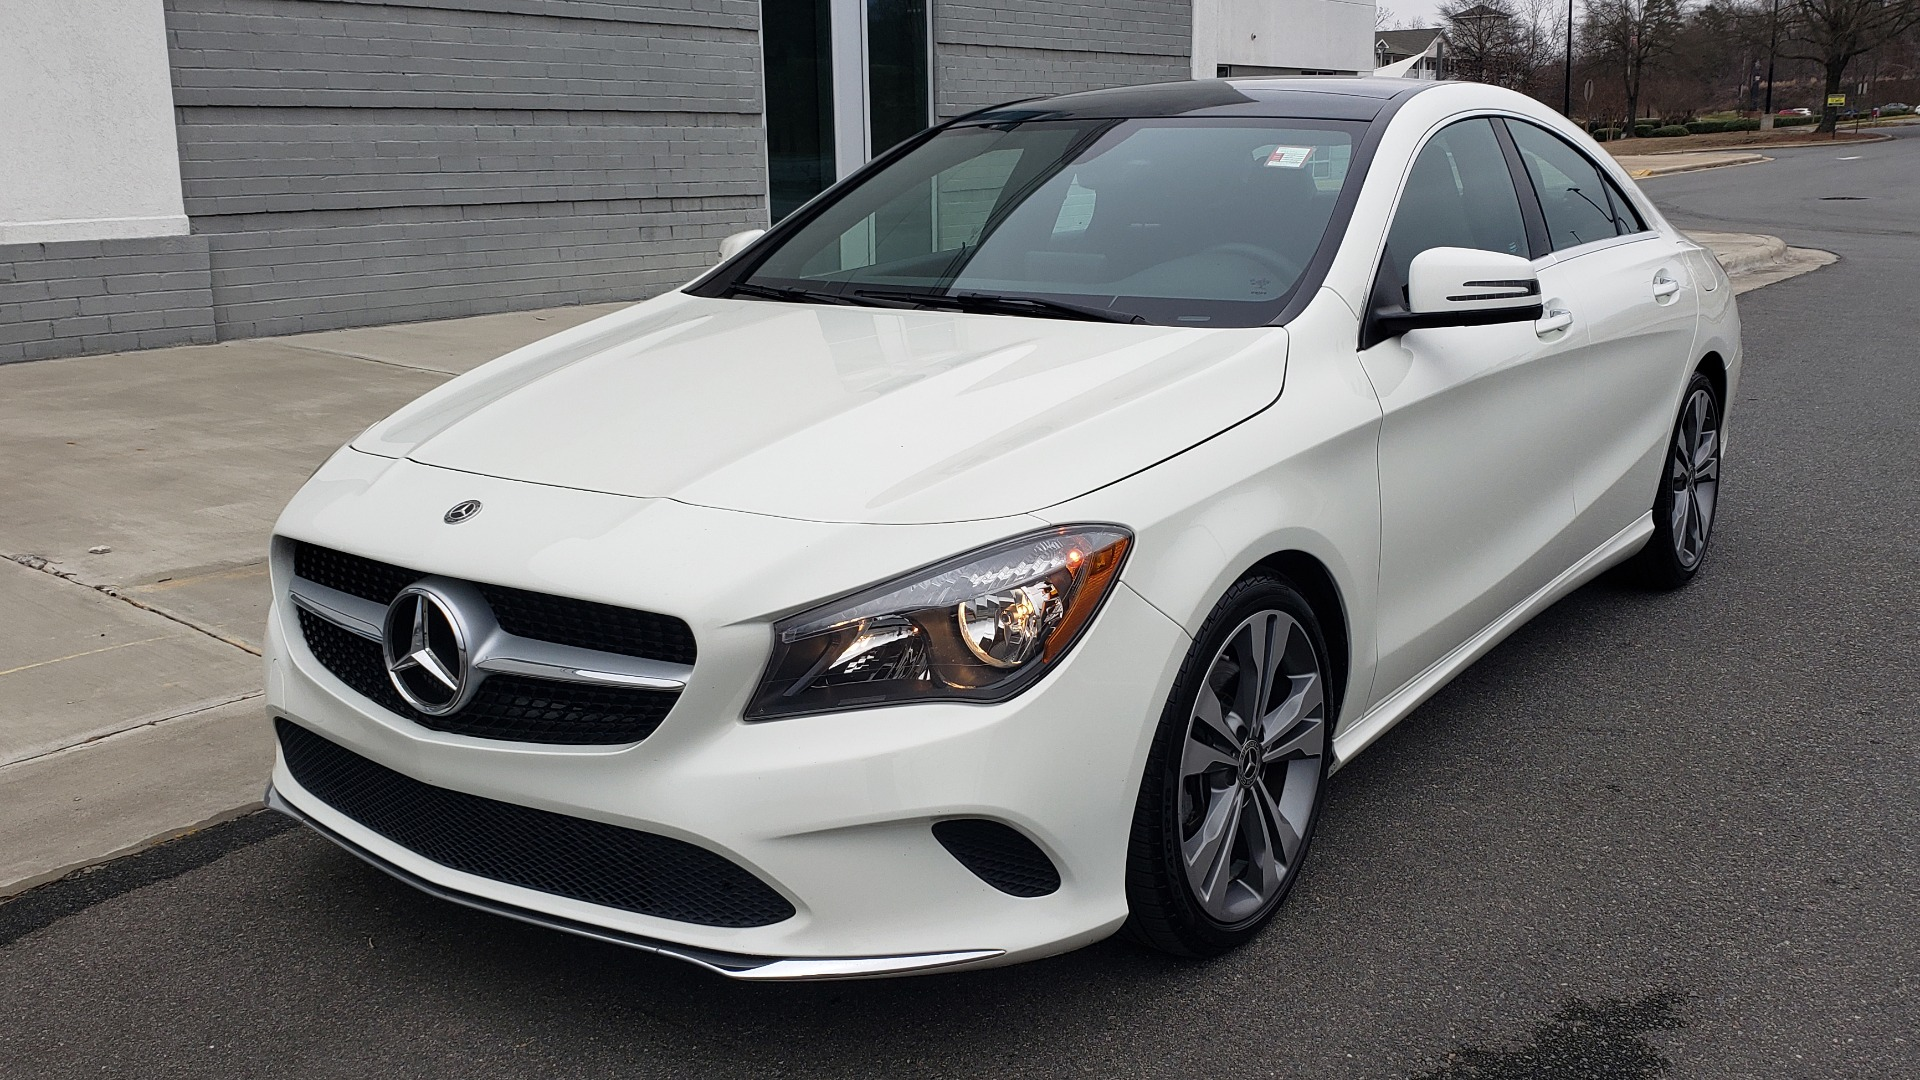 Used 2018 Mercedes-Benz CLA 250 PREMIUM / NAV / PANO-ROOF / APPLE CARPLAY / REARVIEW for sale $23,995 at Formula Imports in Charlotte NC 28227 3